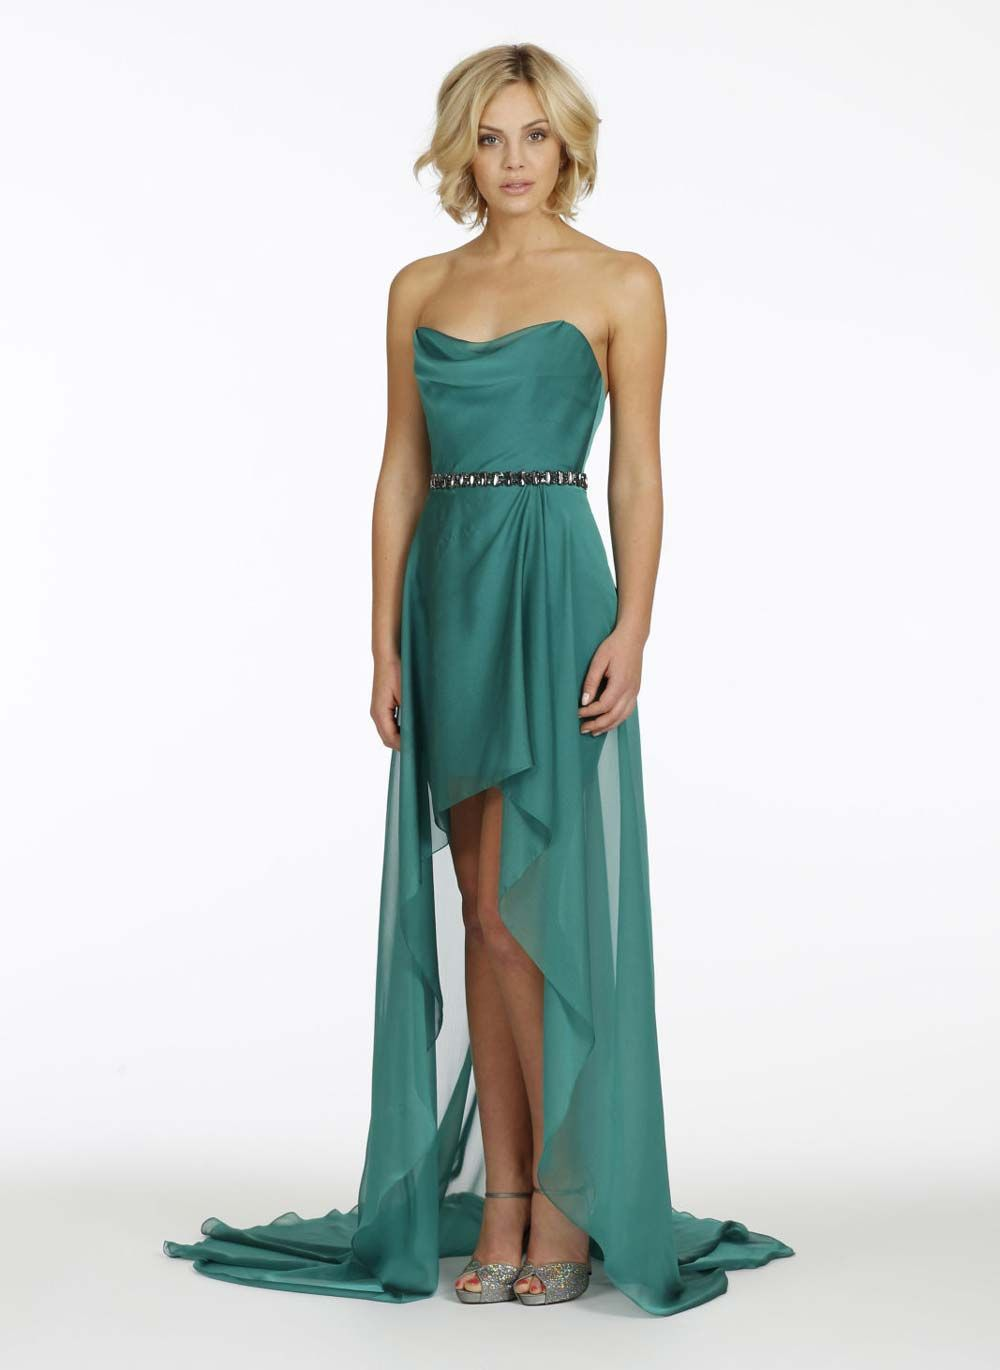 Teal Bridesmaid Dresses: 15 of Our Favourite Styles | Teal ...